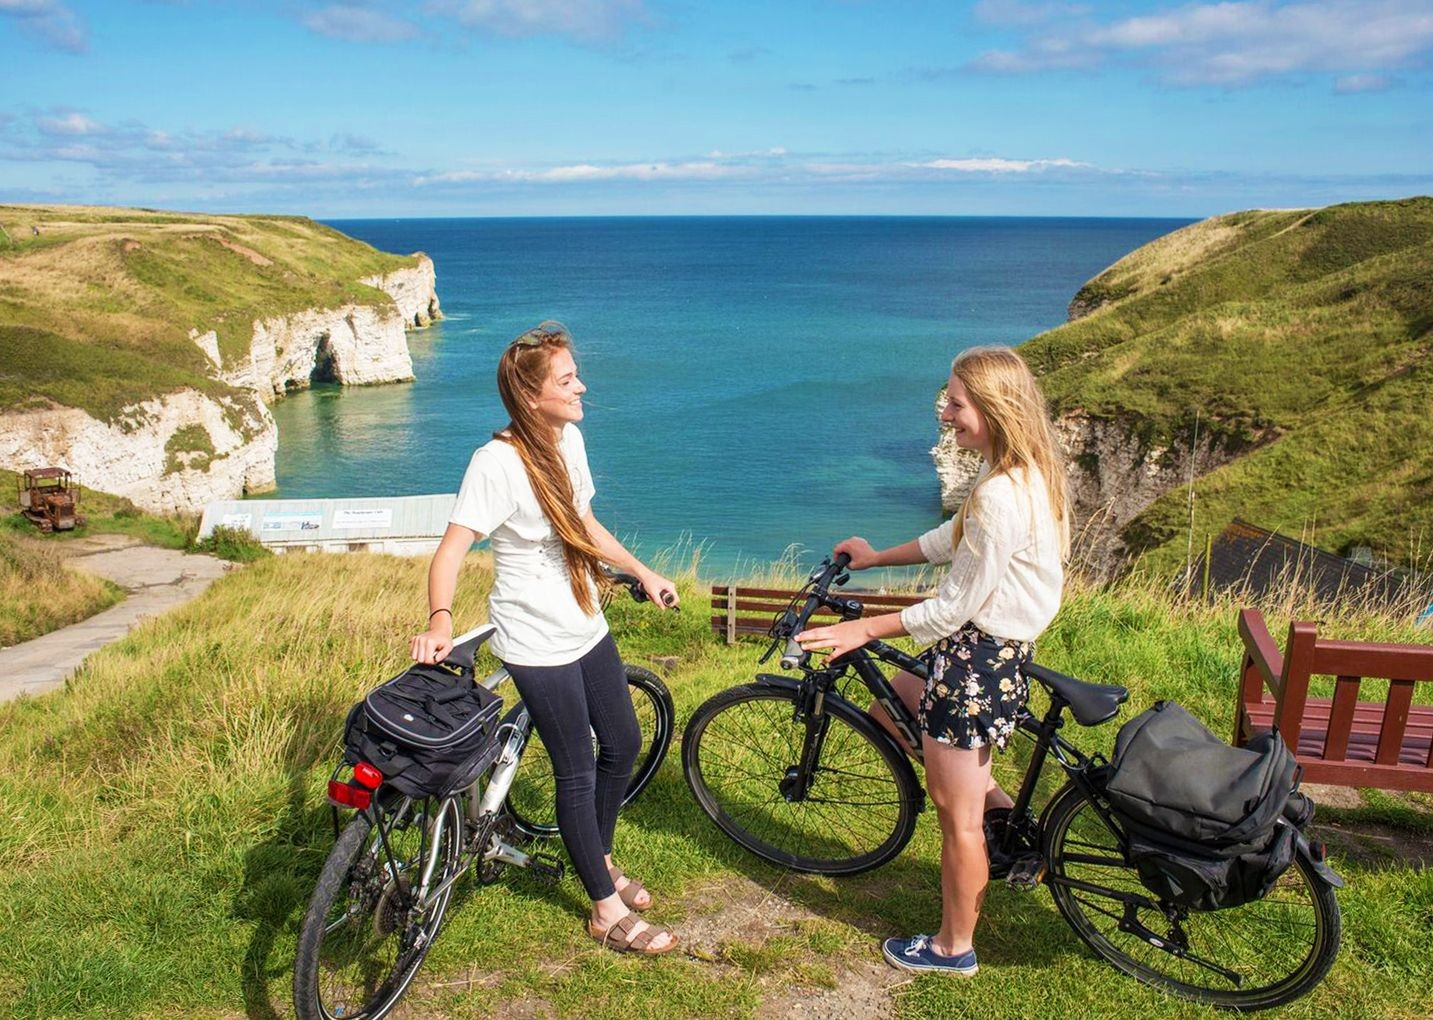 flamborough-cliffs-yorkshire-ride-bike-uk.jpg - UK - Yorkshire Wolds - 5 Days Cycling - Self-Guided Leisure Cycling Holiday - Leisure Cycling